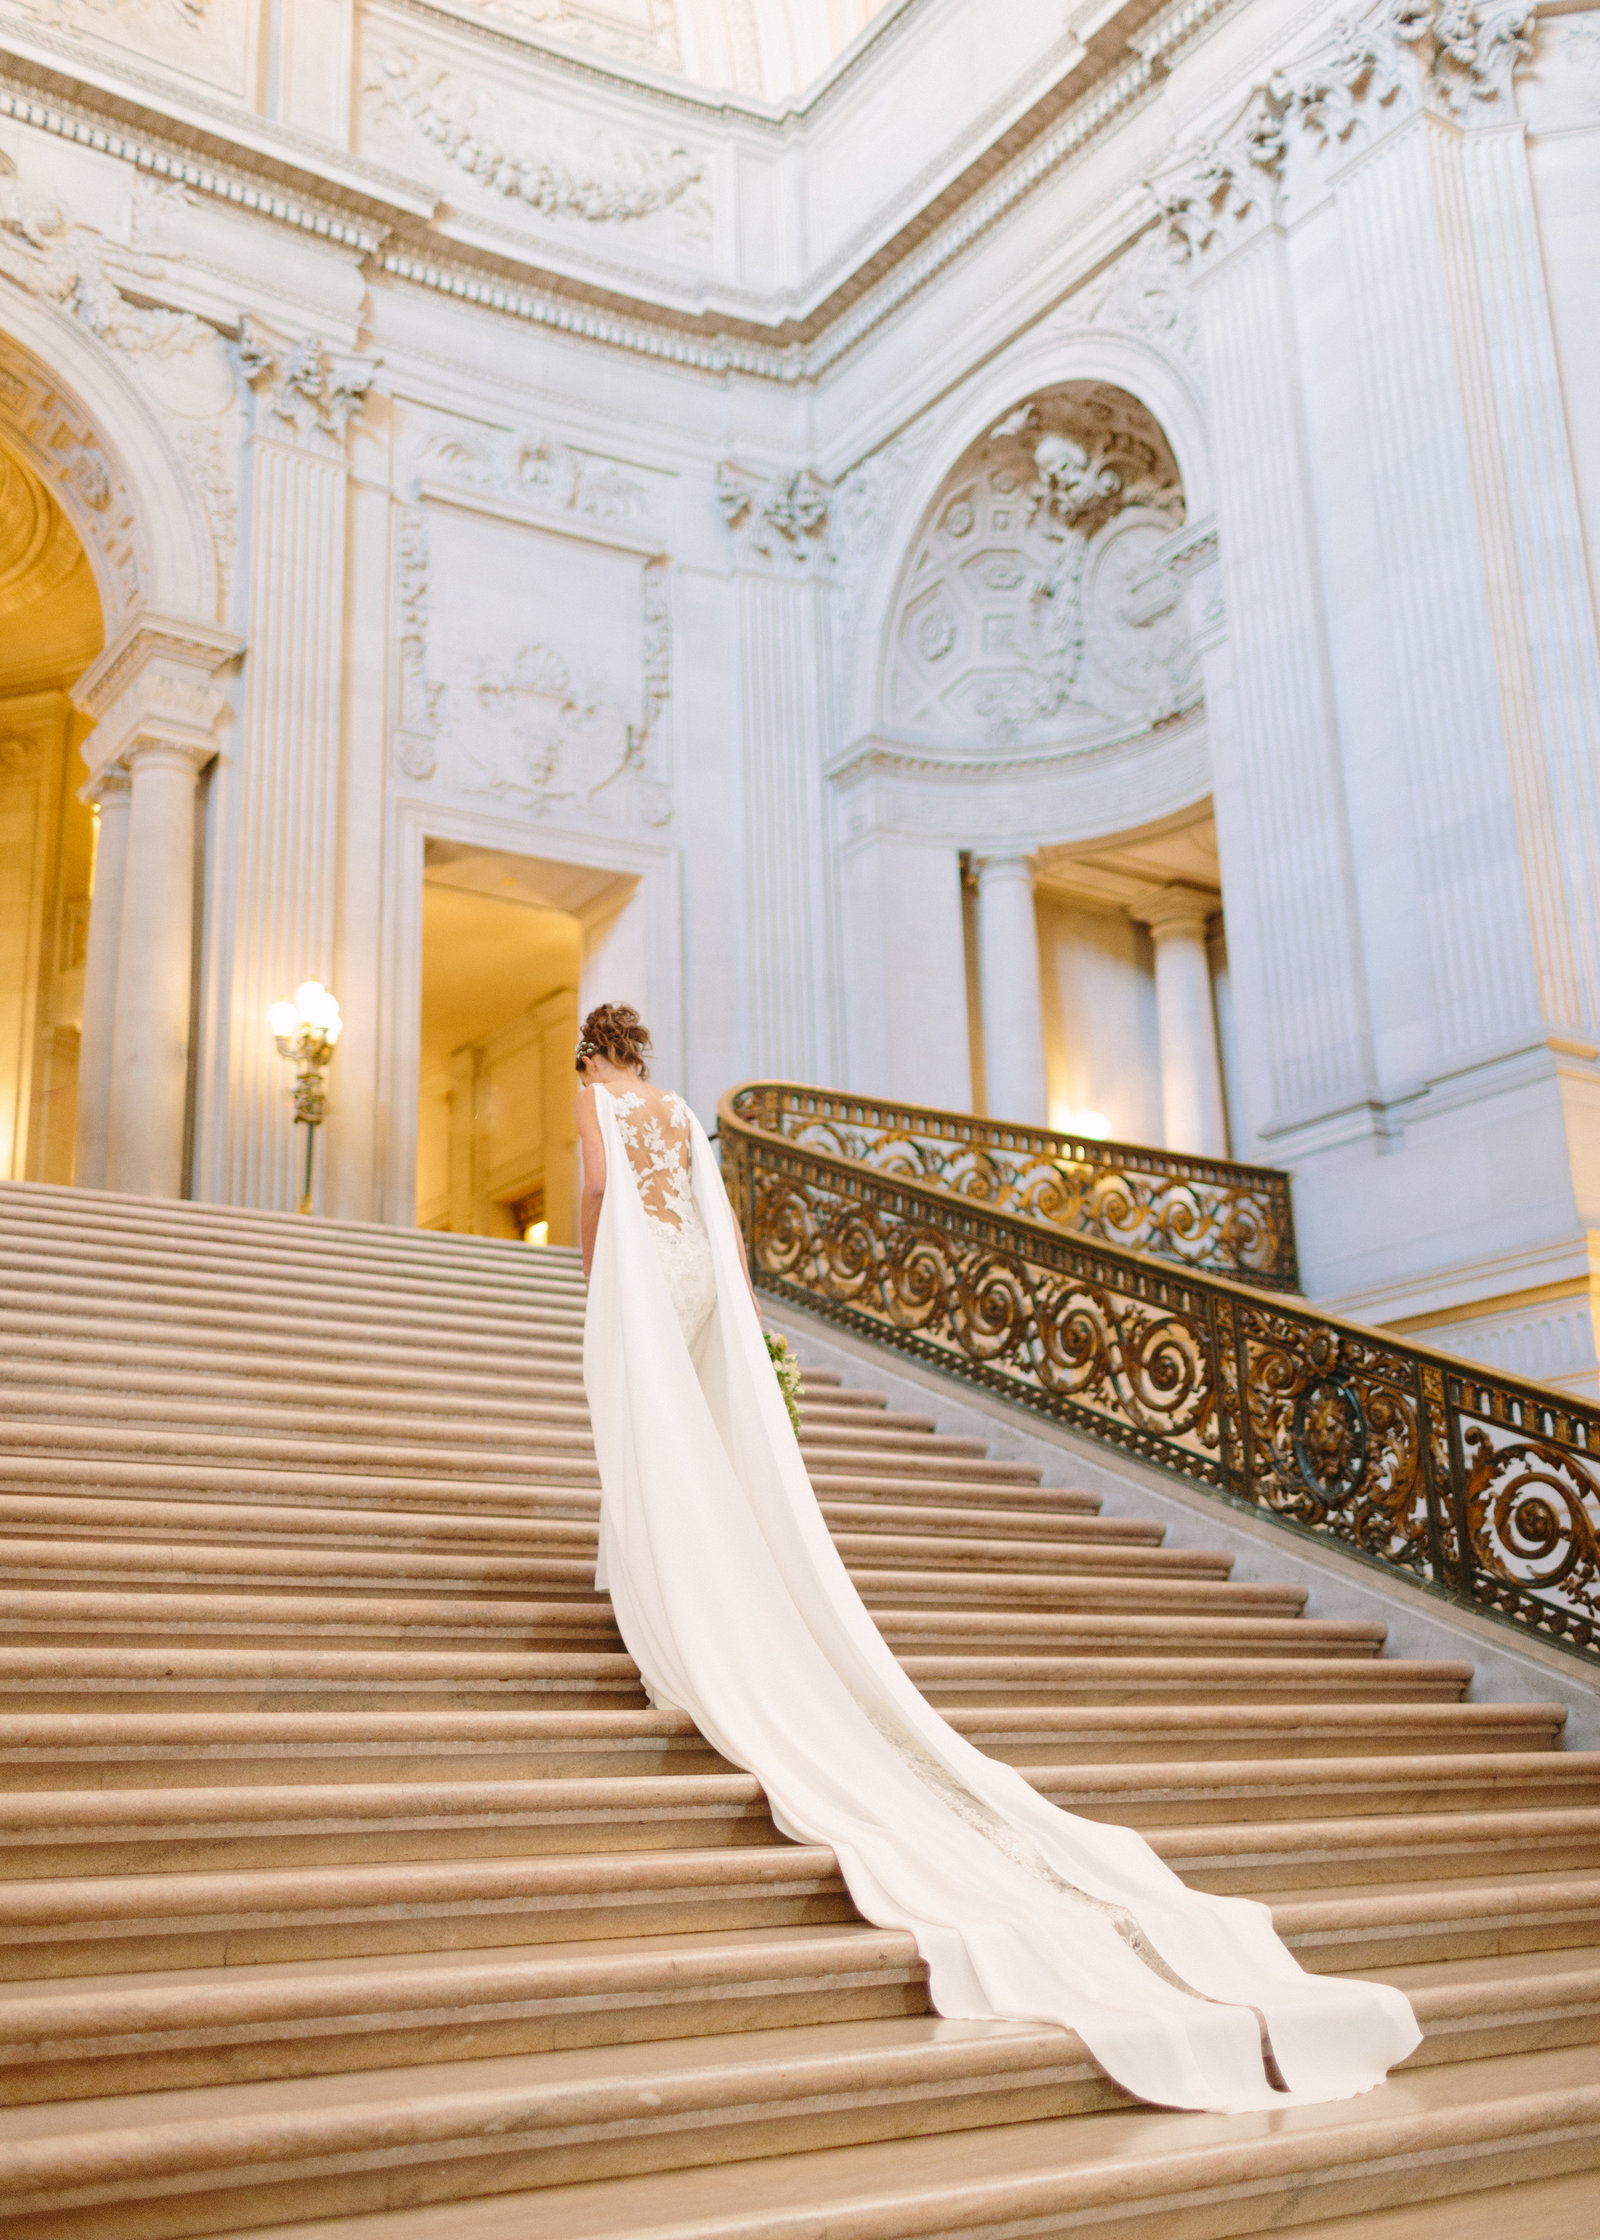 026-larissa-cleveland-editorial-fashion-wedding_photographer-san-francisco-carmel-napa-california-larissa-cleveland-grecian-cape-dress-008